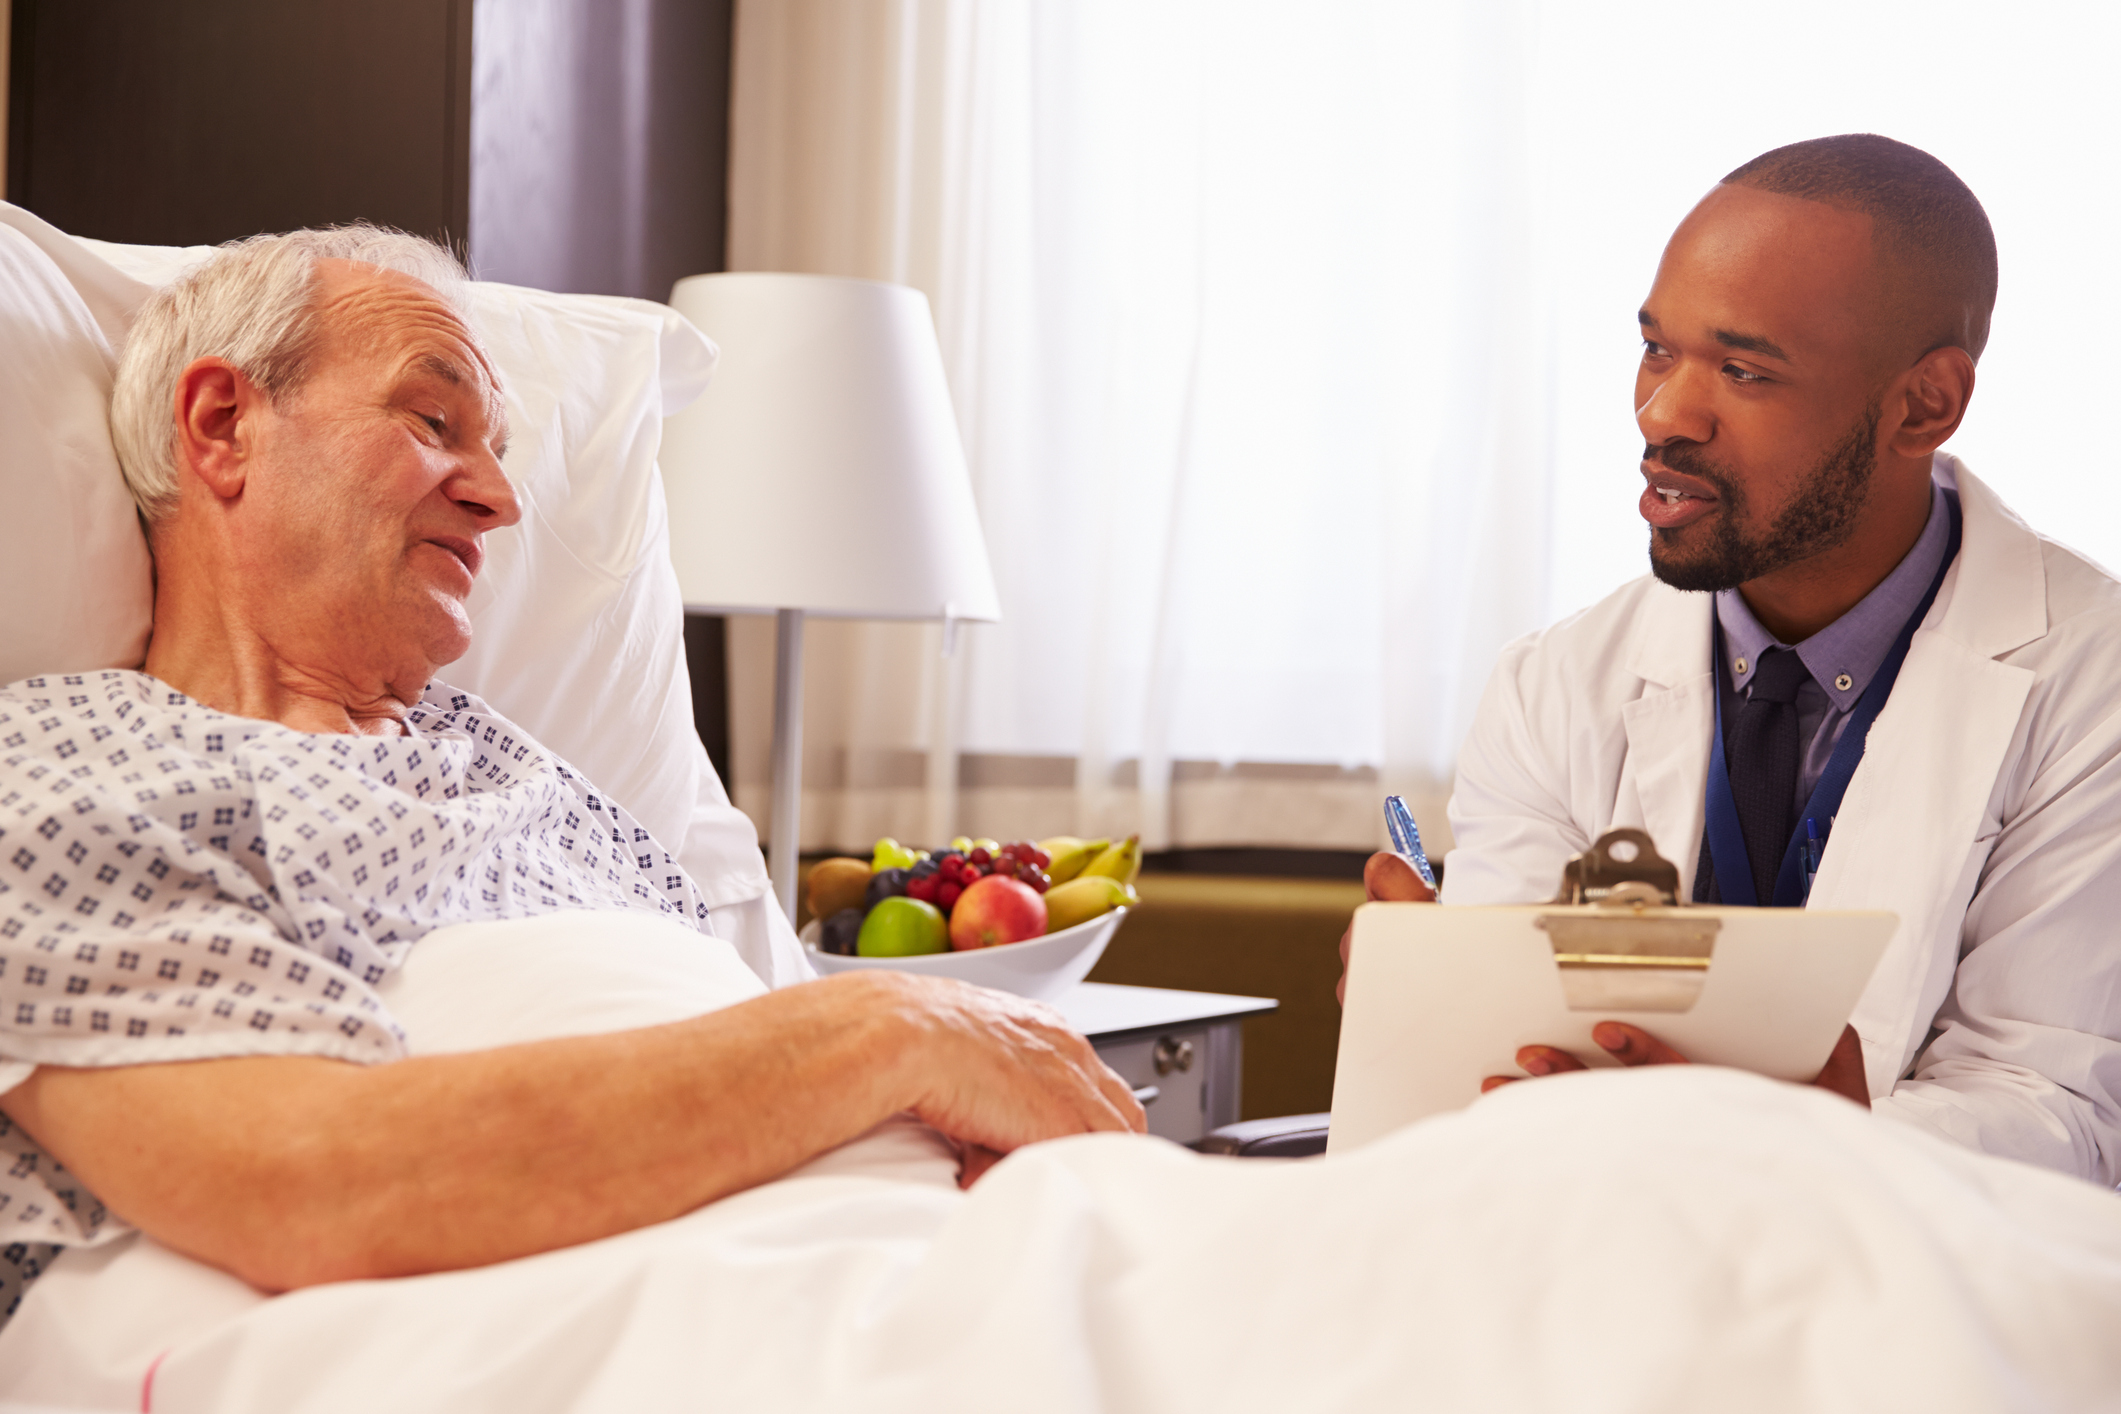 Doctor talking to patient during hospital stay